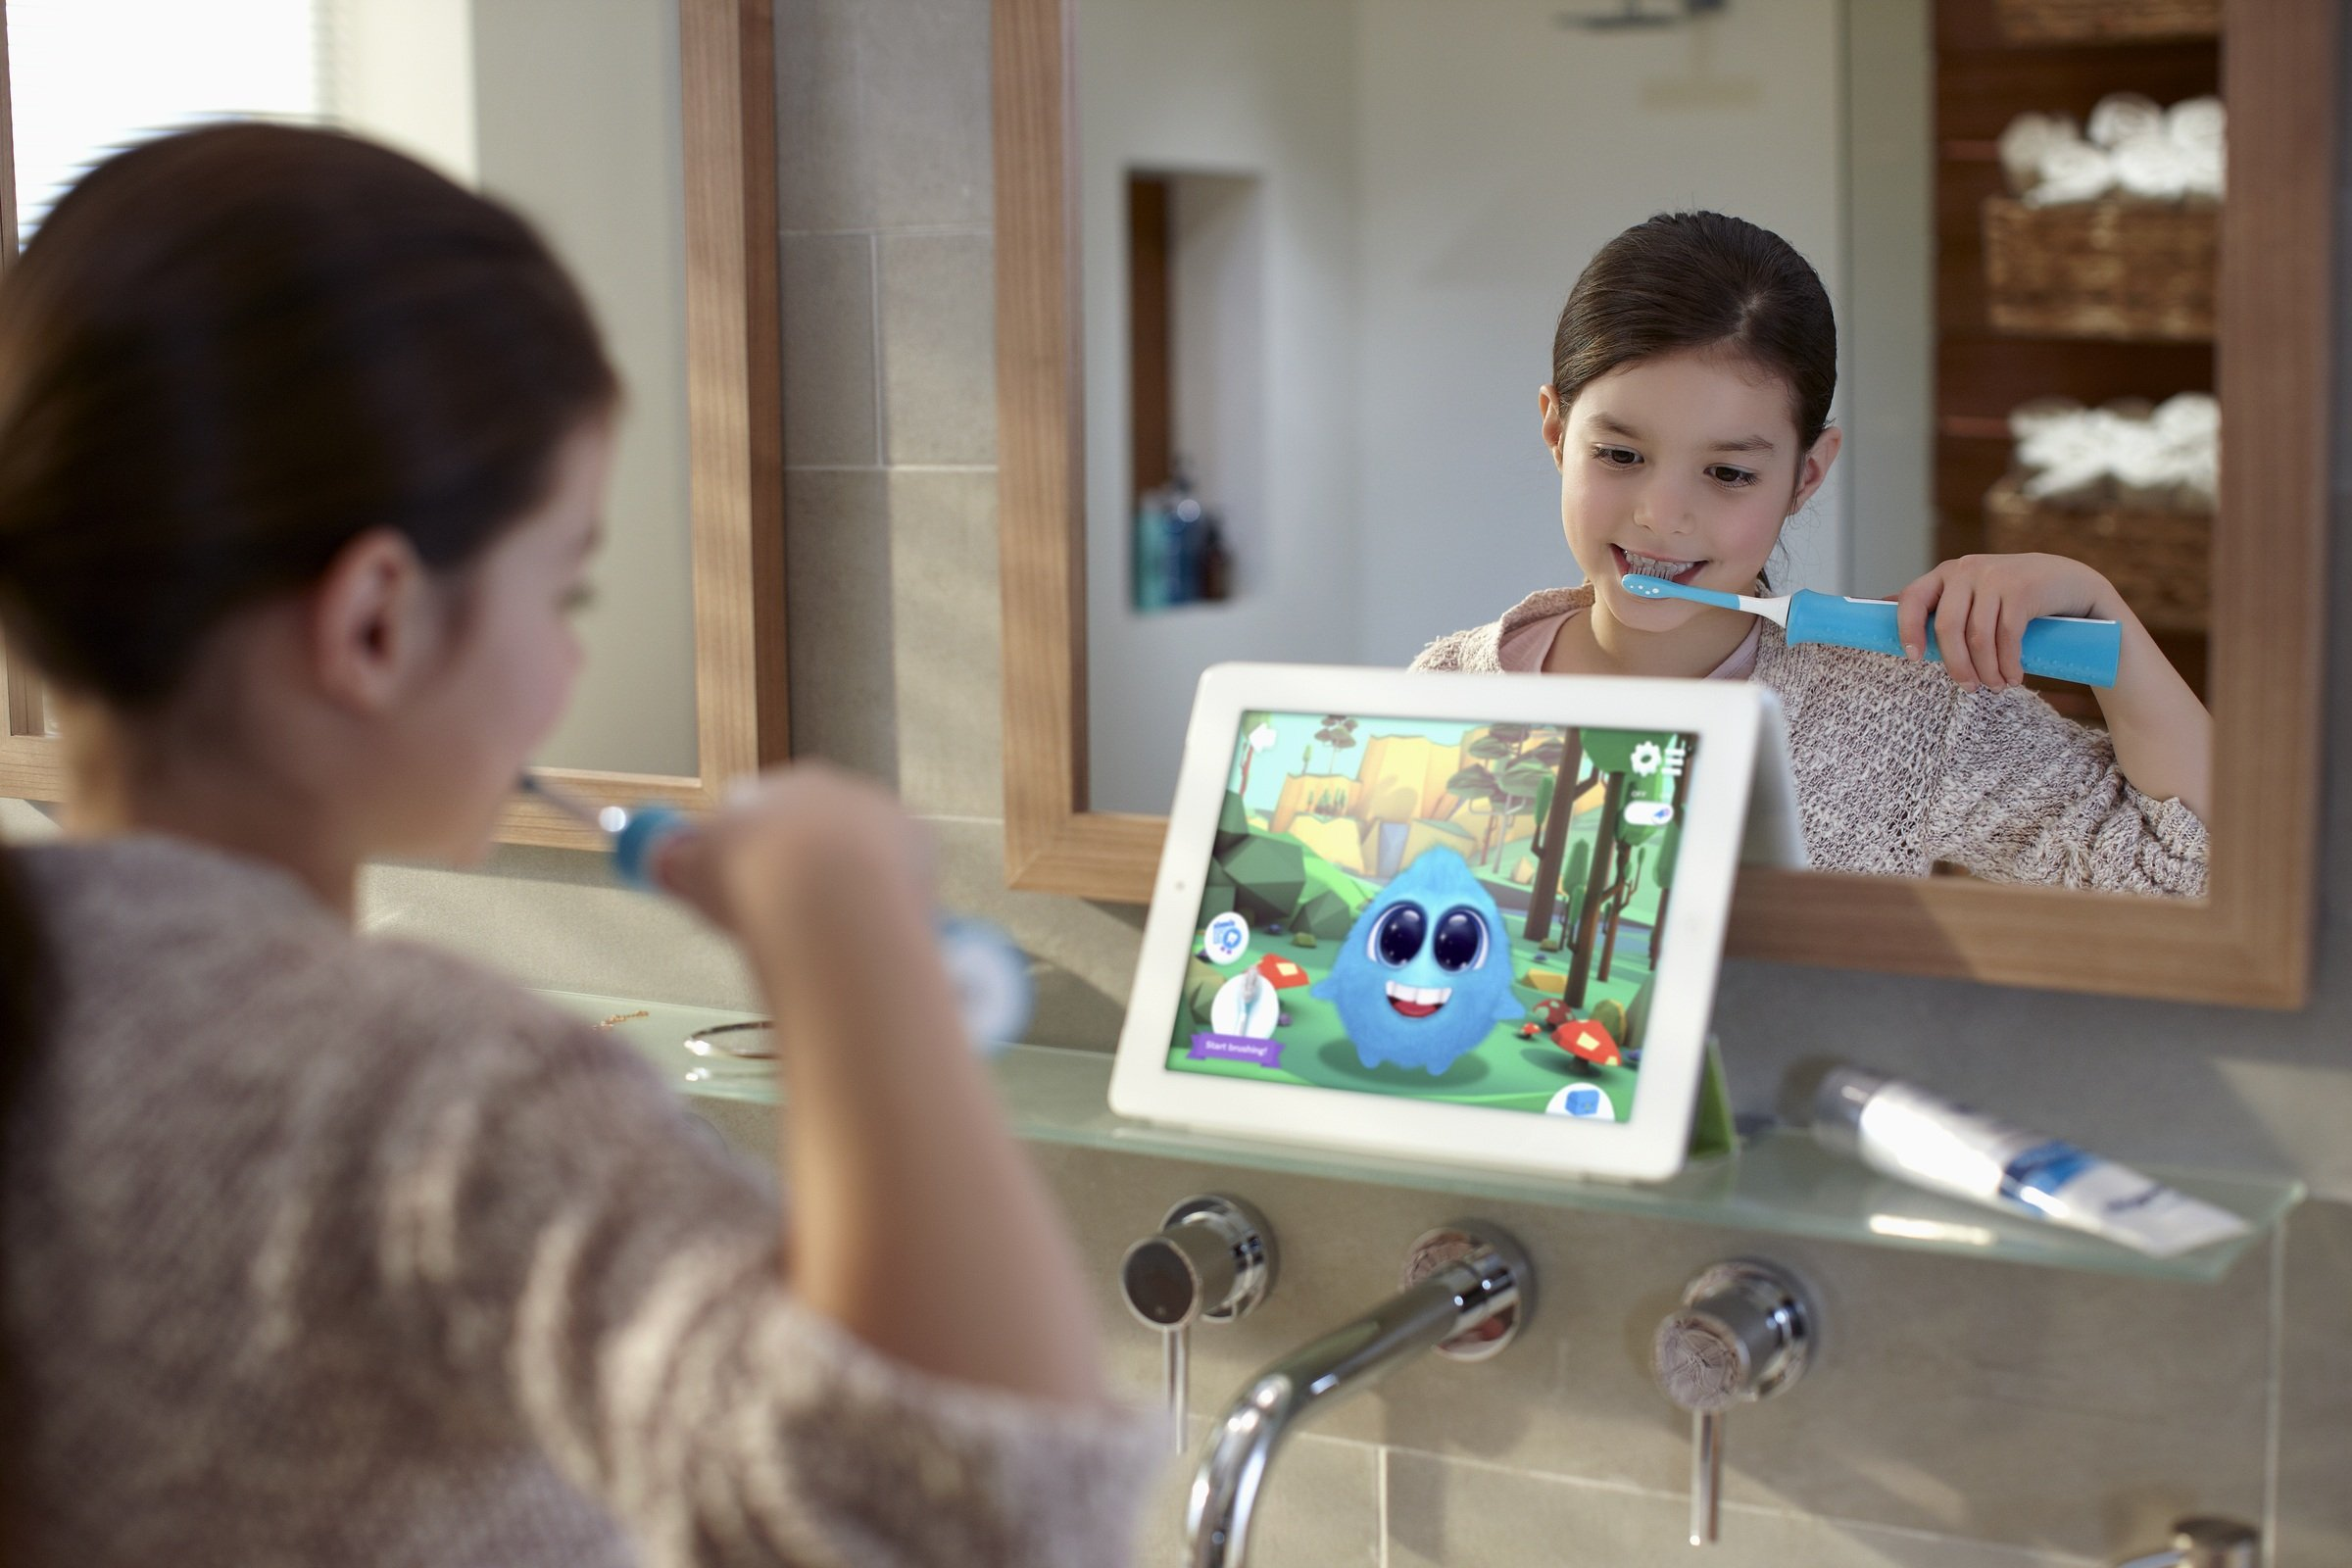 Philips Sonicare for Kids Bluetooth Connected Rechargeable Electric Toothbrush, HX6321/02 by Philips Sonicare (Image #4)